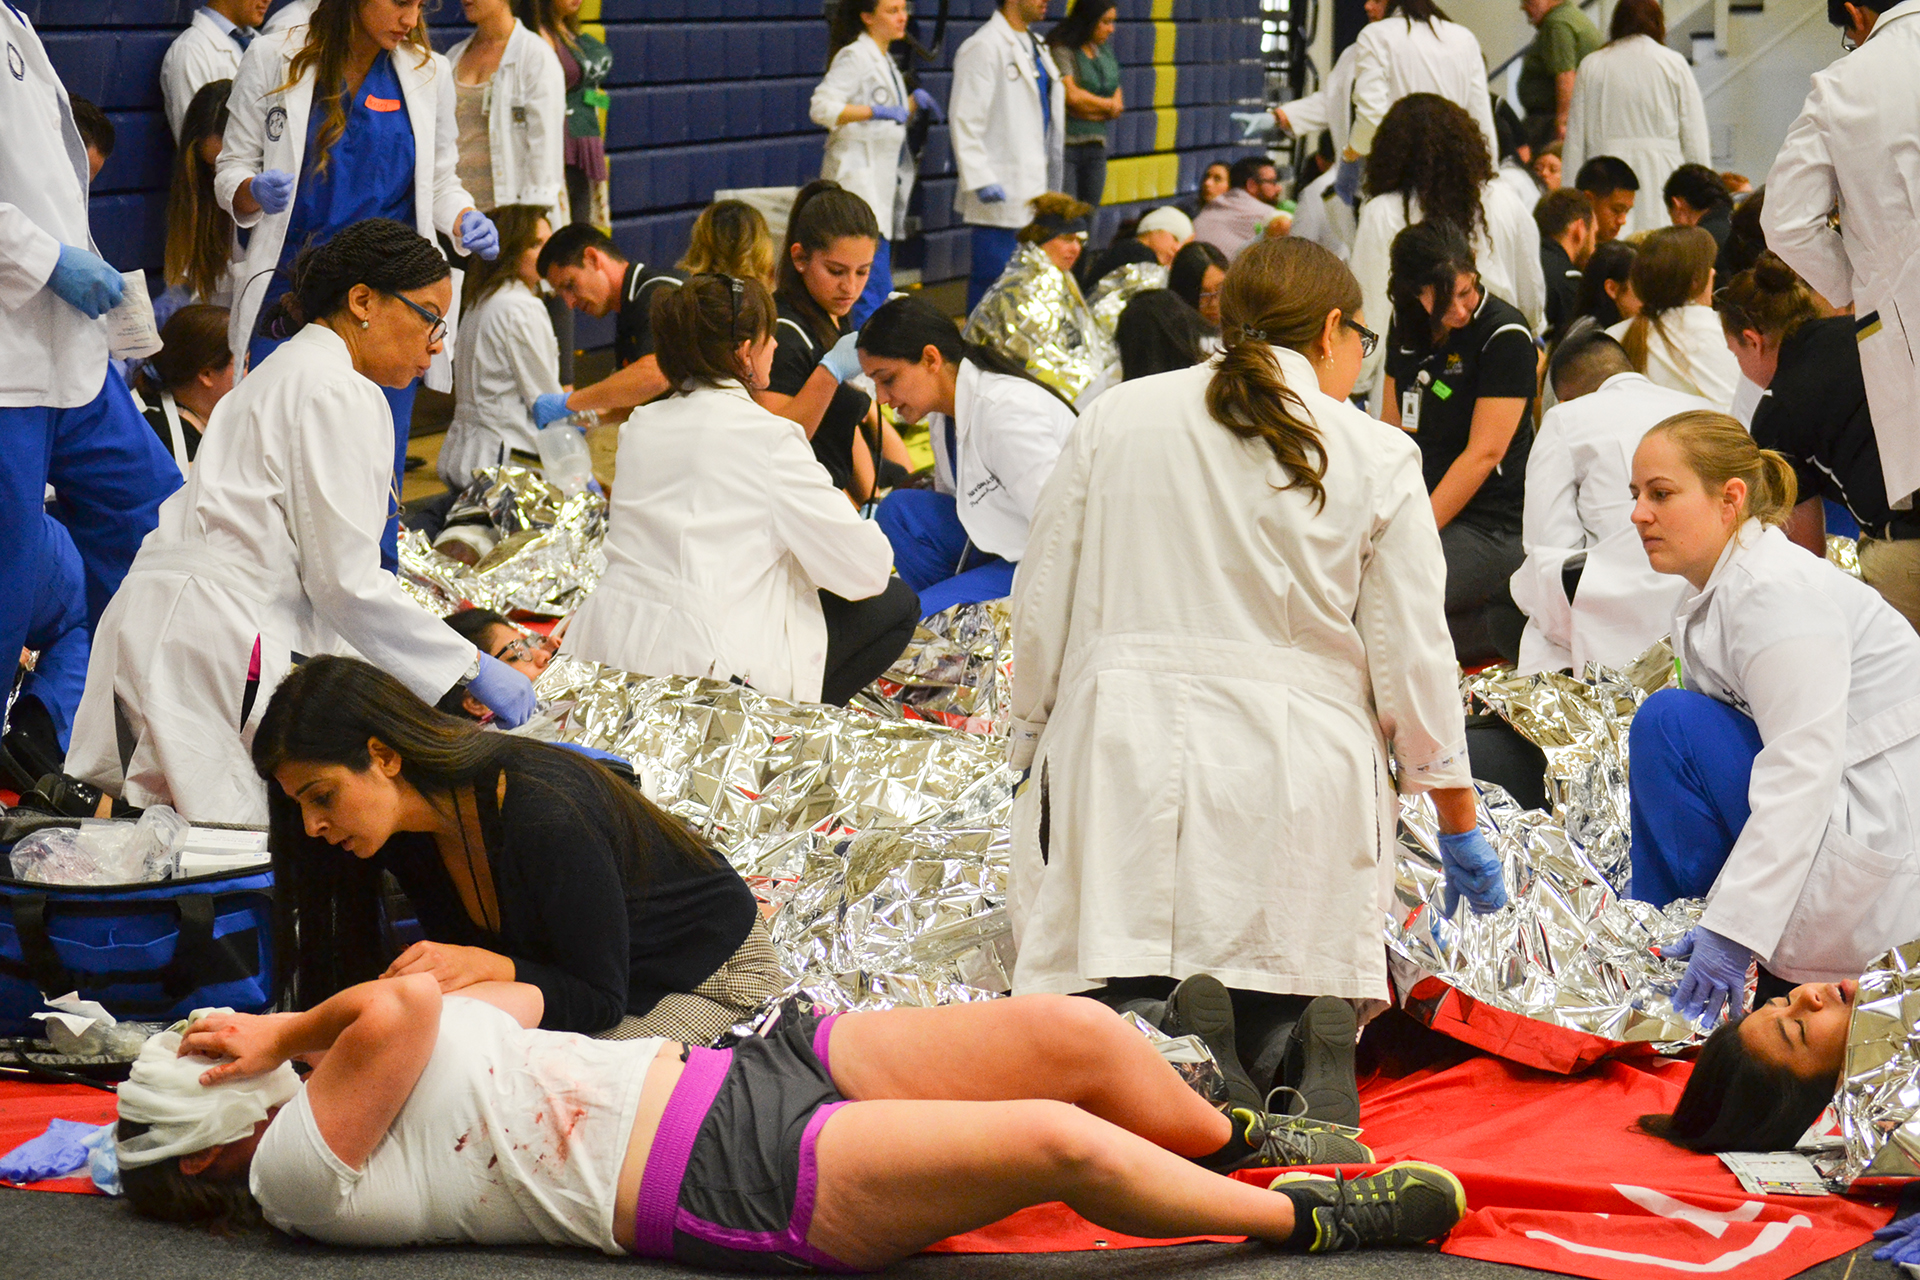 Disaster simulation aims to prepare CBU students for real-life responses